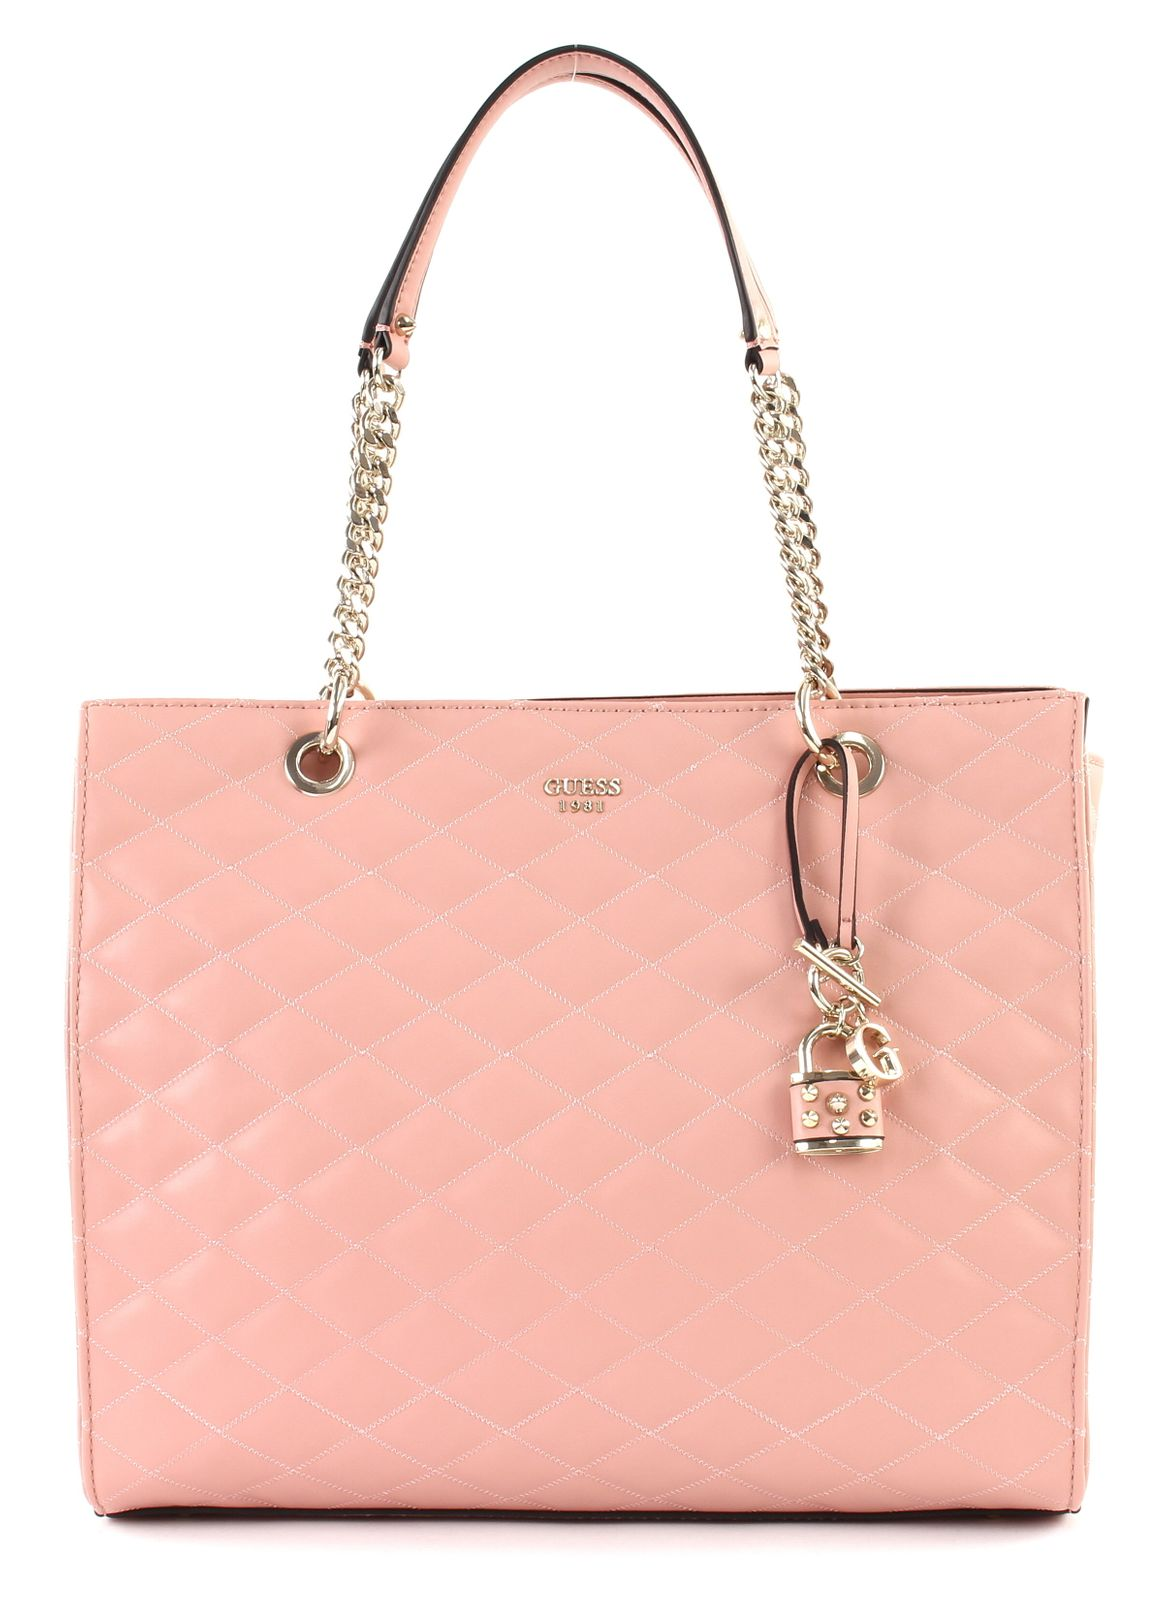 GUESS Penelope Shopper Schultertasche Shopper Tasche Rose